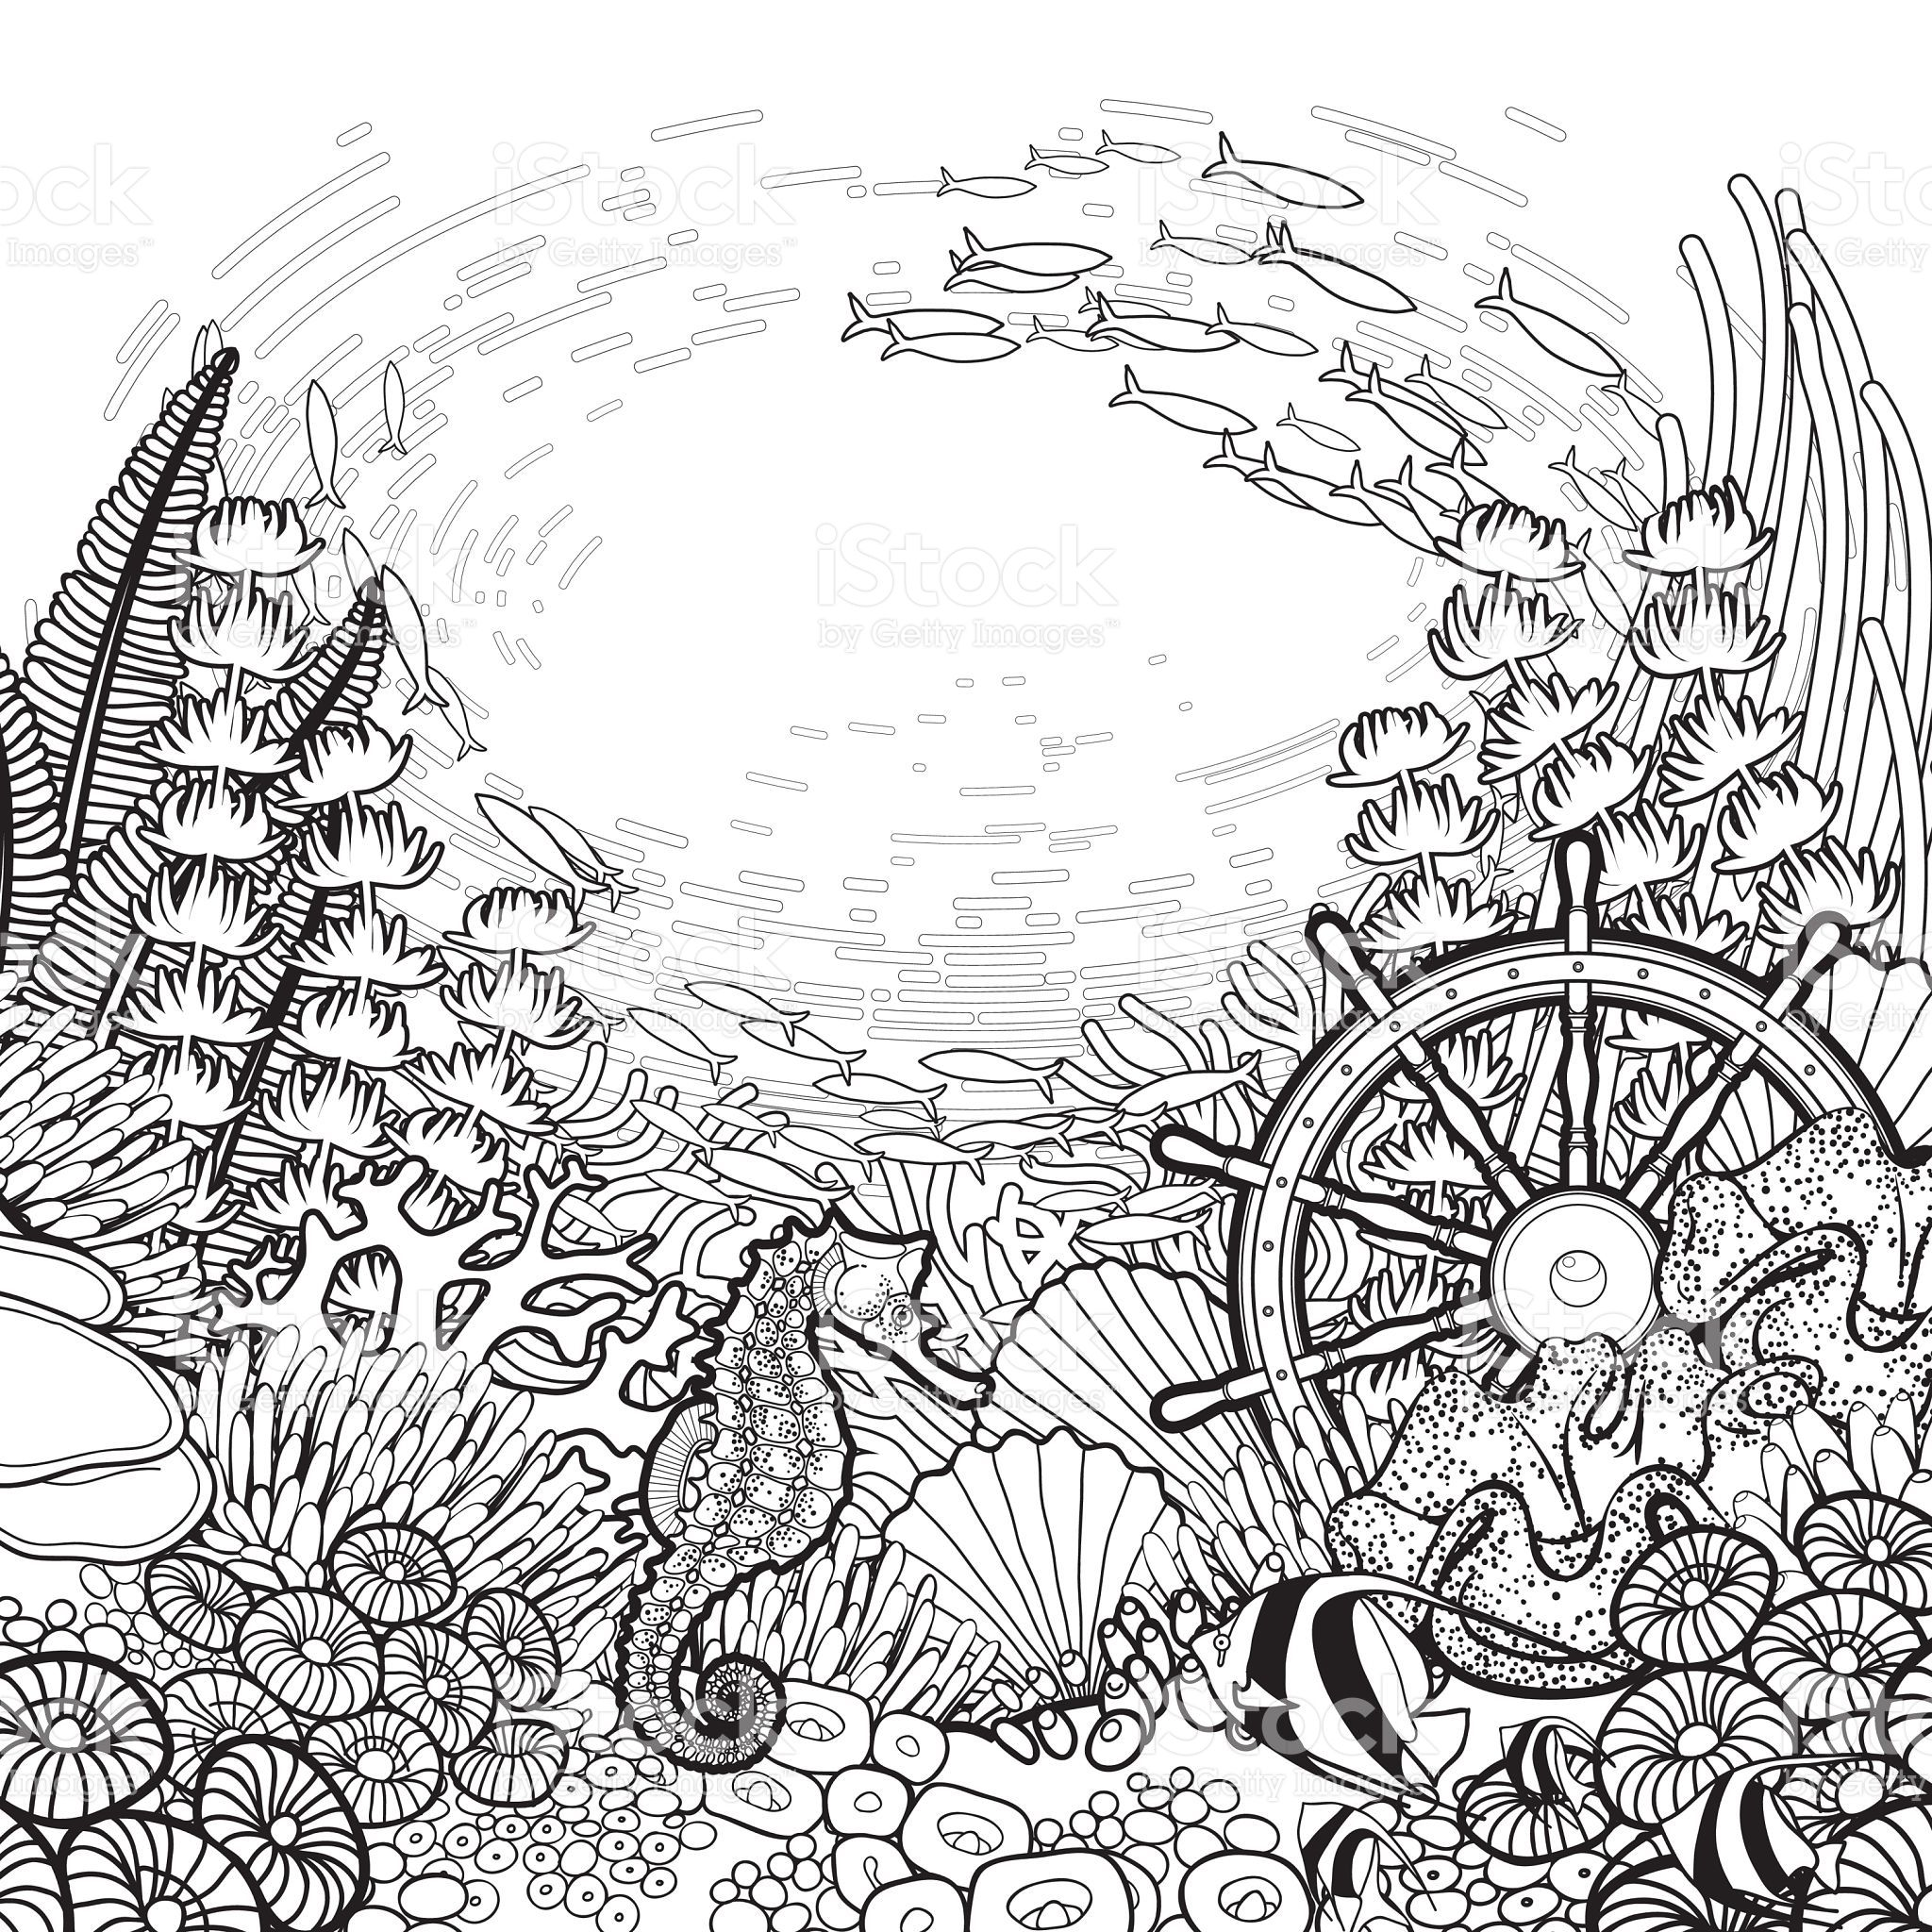 Free Coloring Pages Of A Sunken Ship, Download Free Clip Art, Free ... | 2048x2048